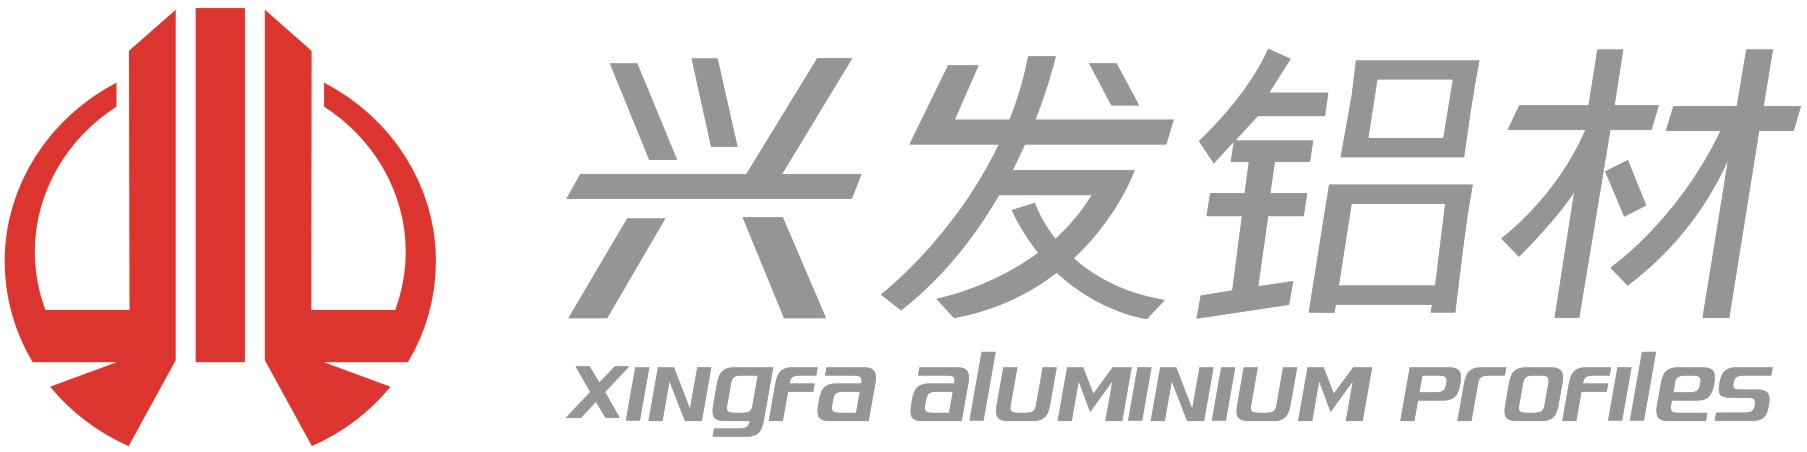 GUANGDONG XINGFA ALUMINUM CO., LTD.|logo